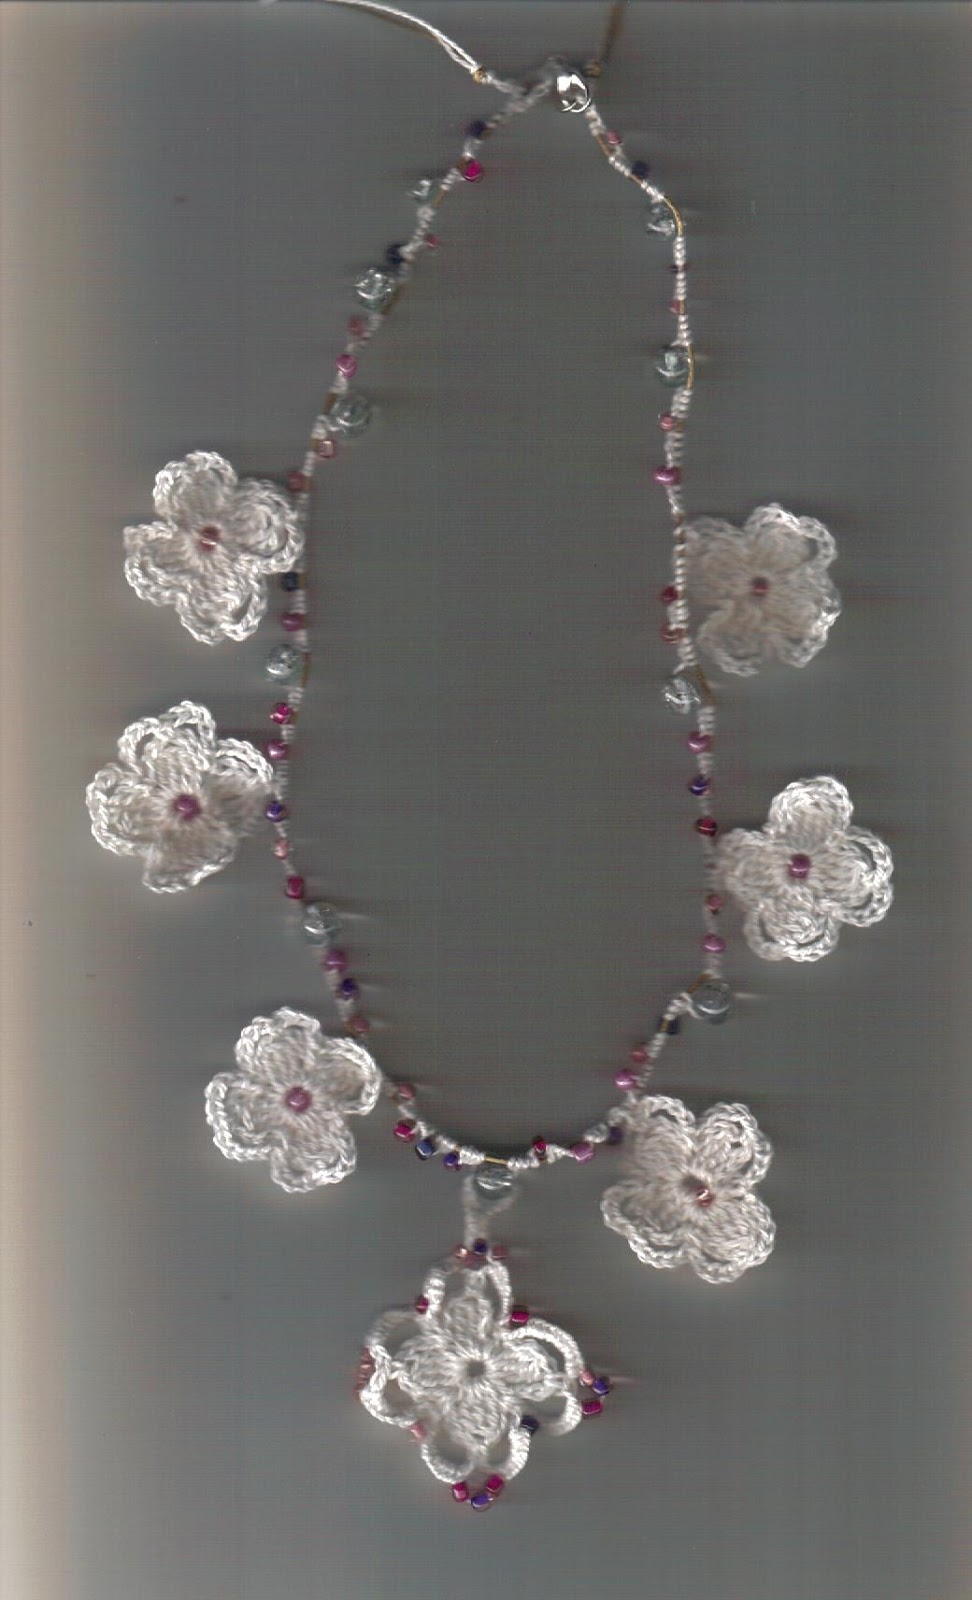 Crochet Jewelry : Flowers Of Spring Beaded Crochet Jewelry #1